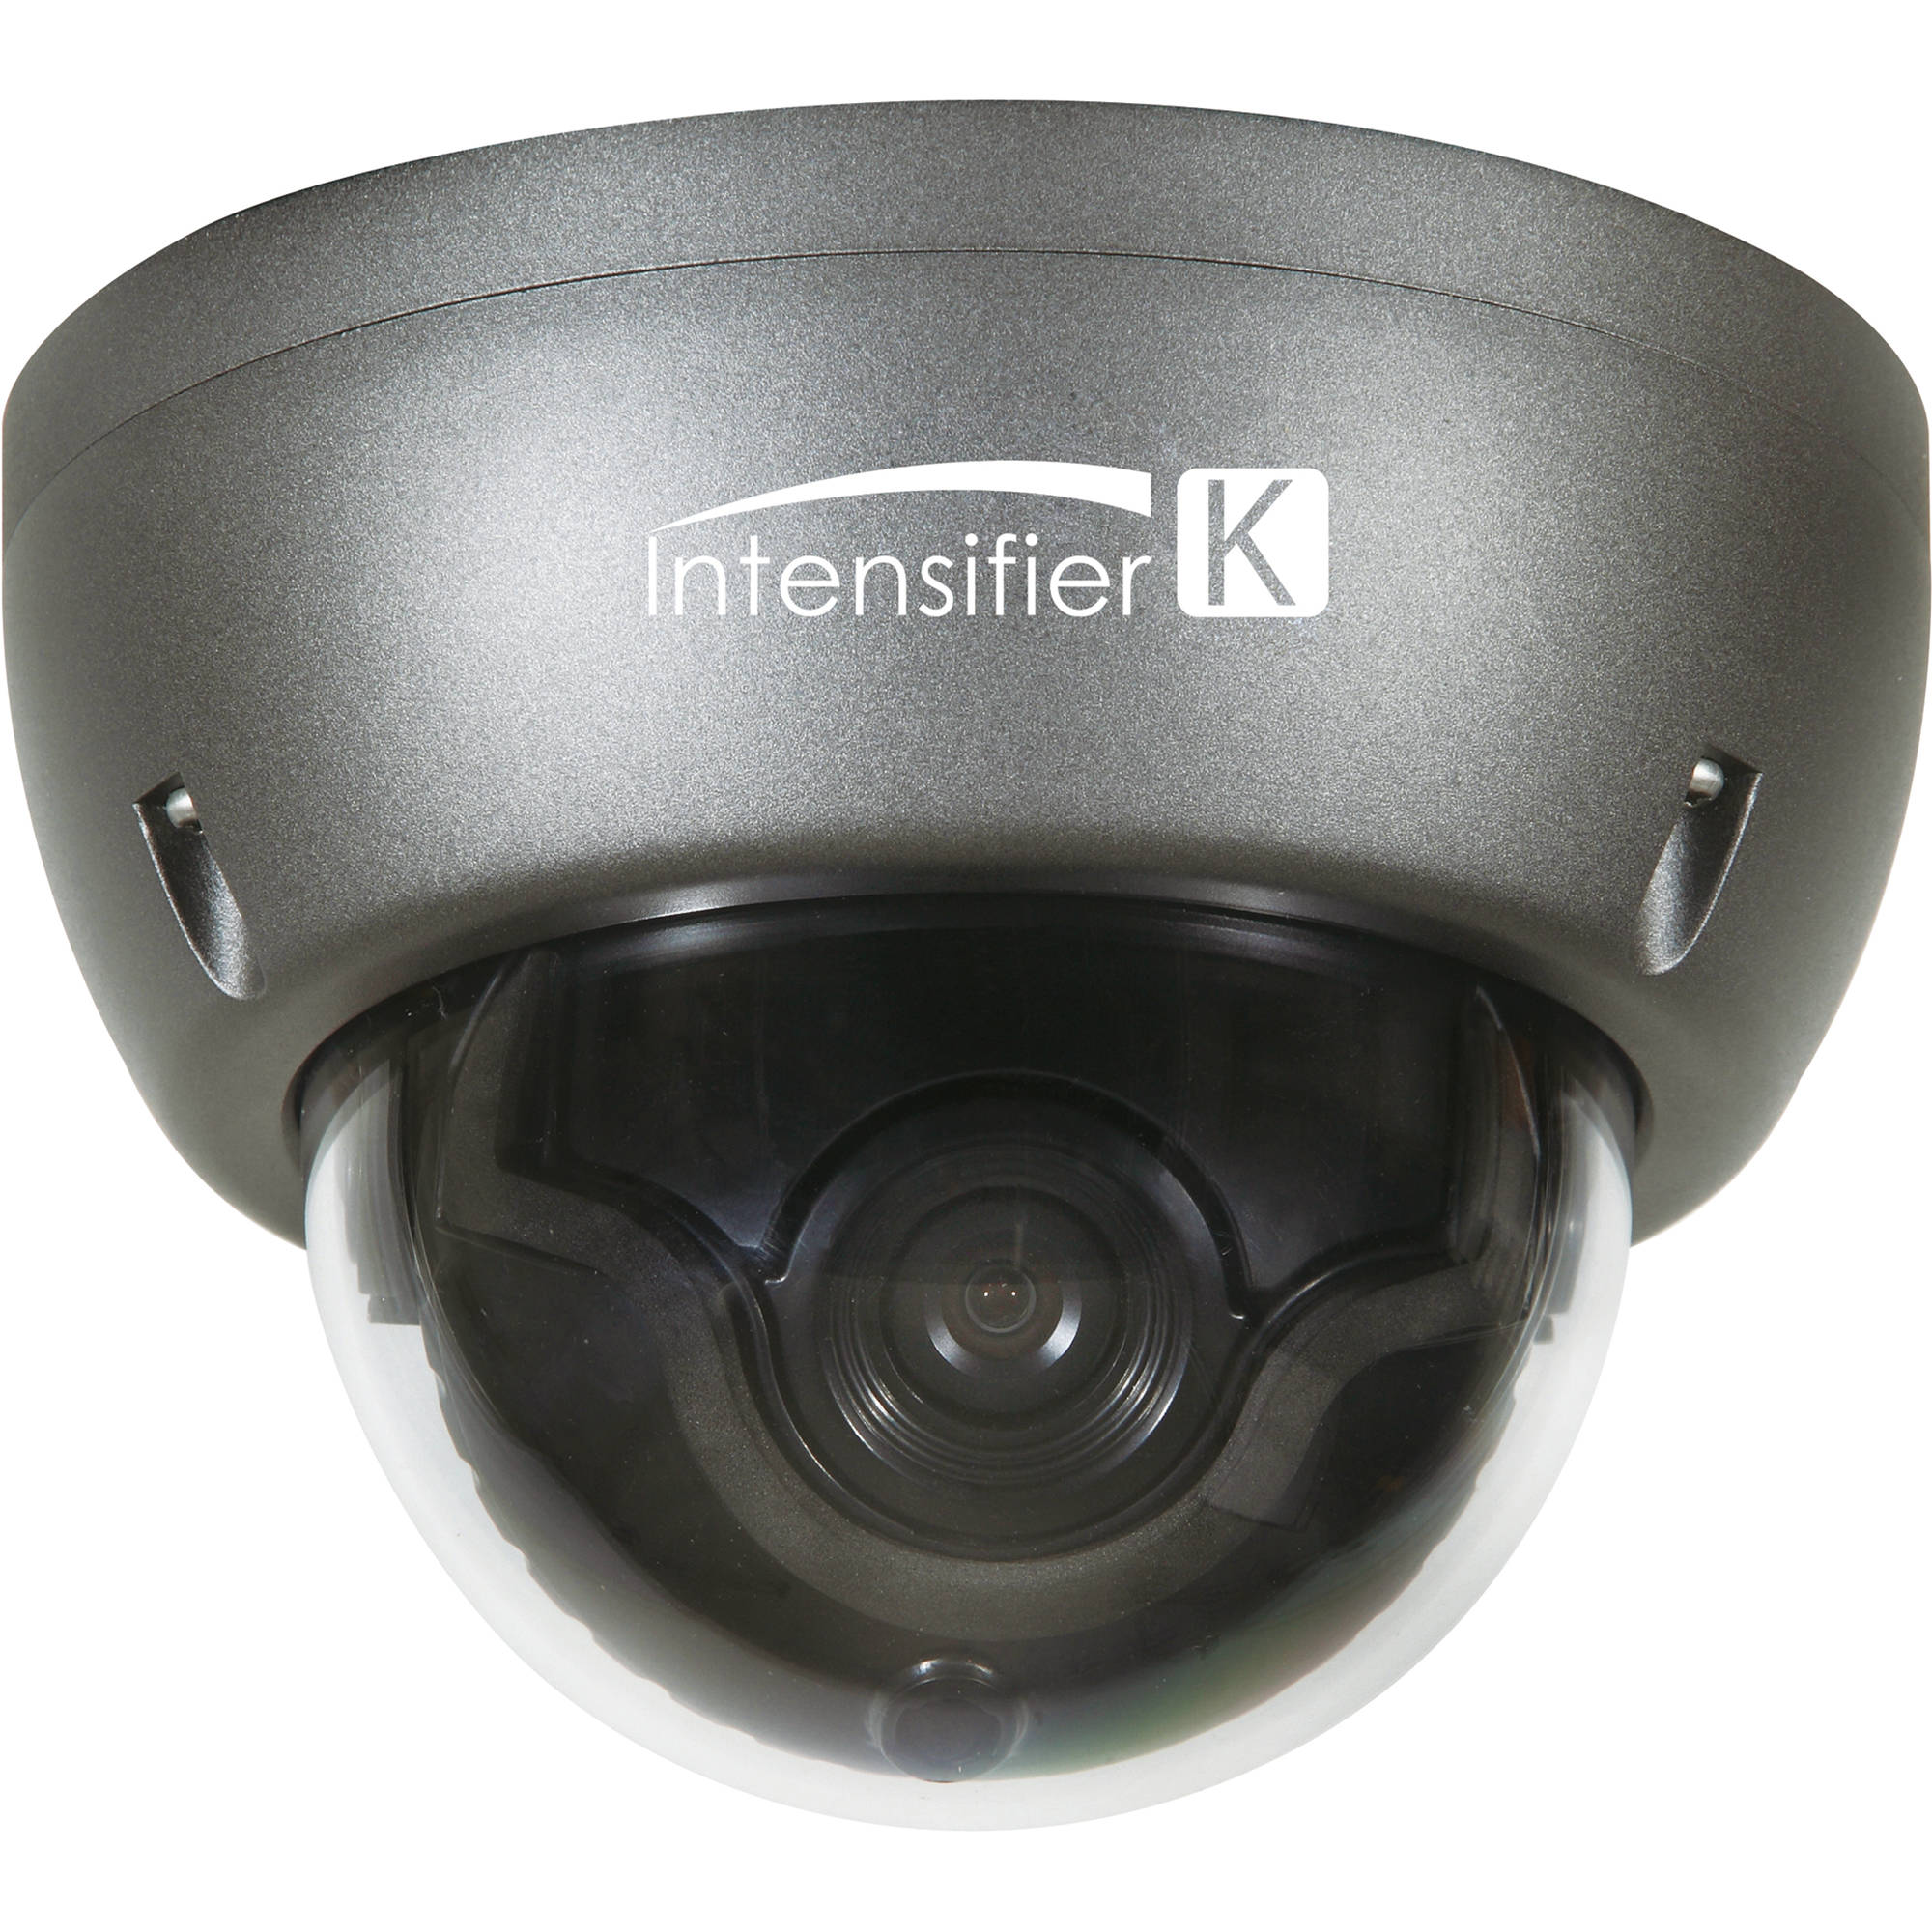 Speco Technologies Intensifier K Series Indoor/Outdoor Dome Camera with 2.8- 12mm Lens and Heater